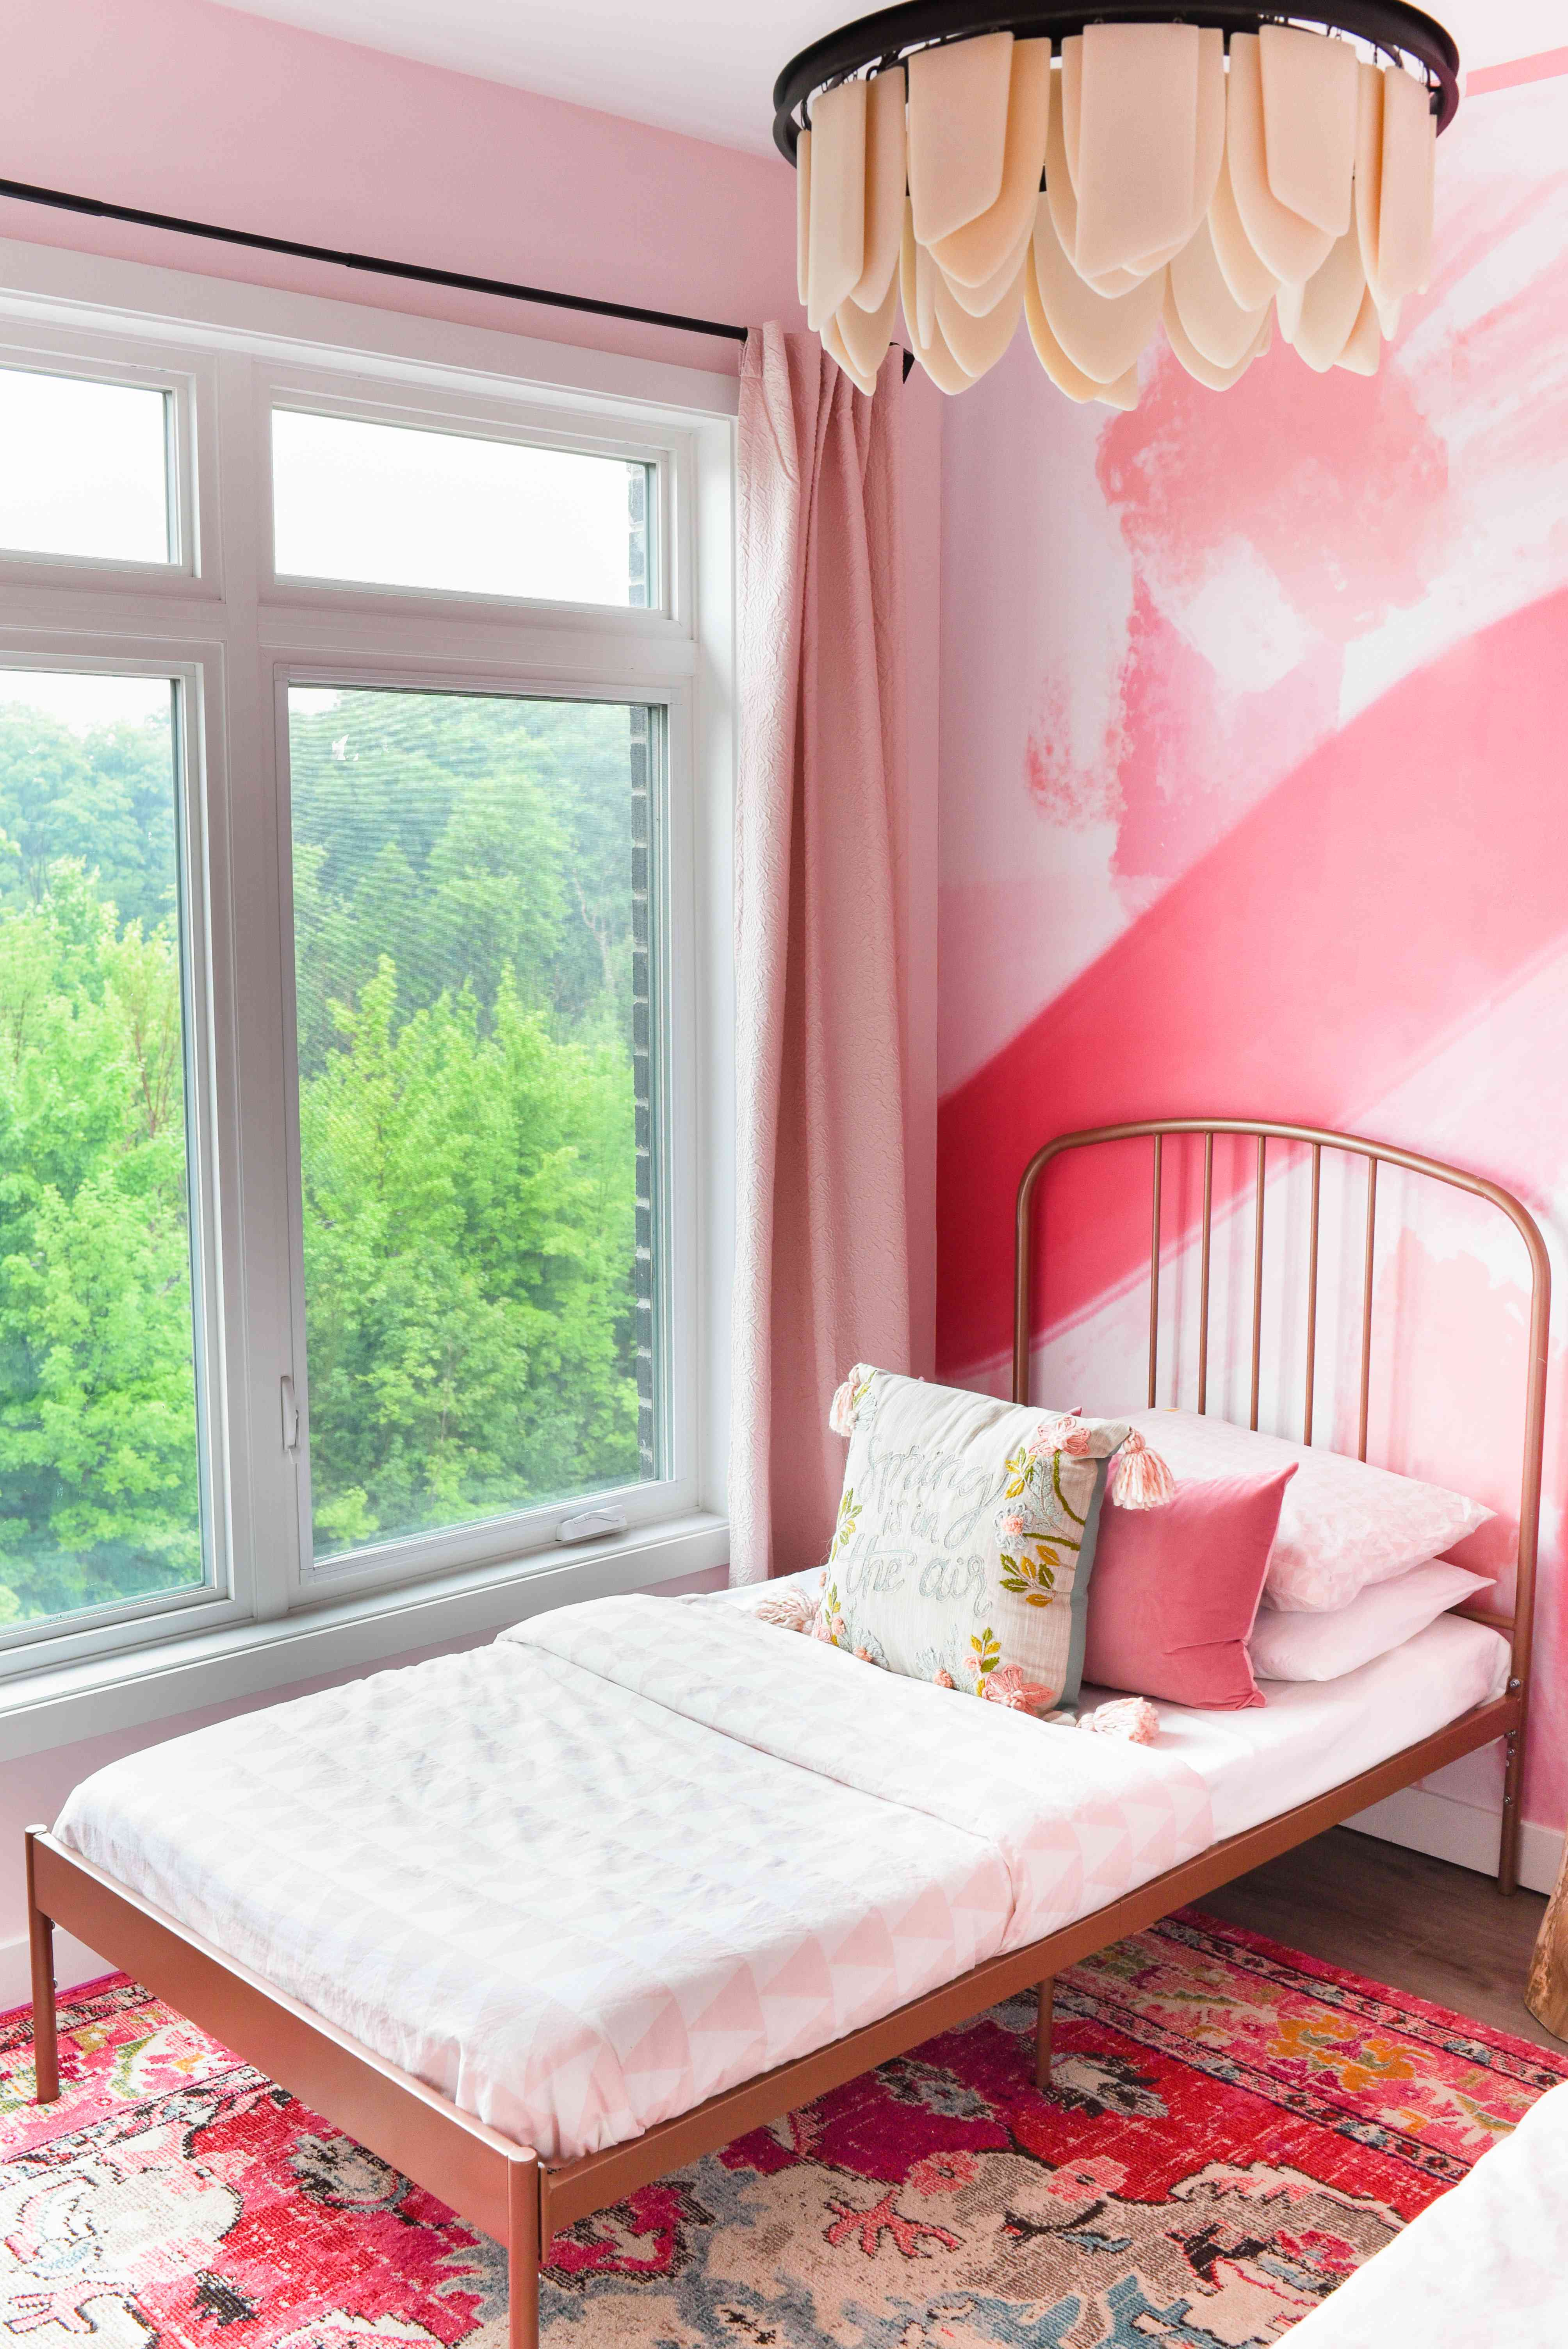 After photo of pink bedroom with metal twin bed frame.